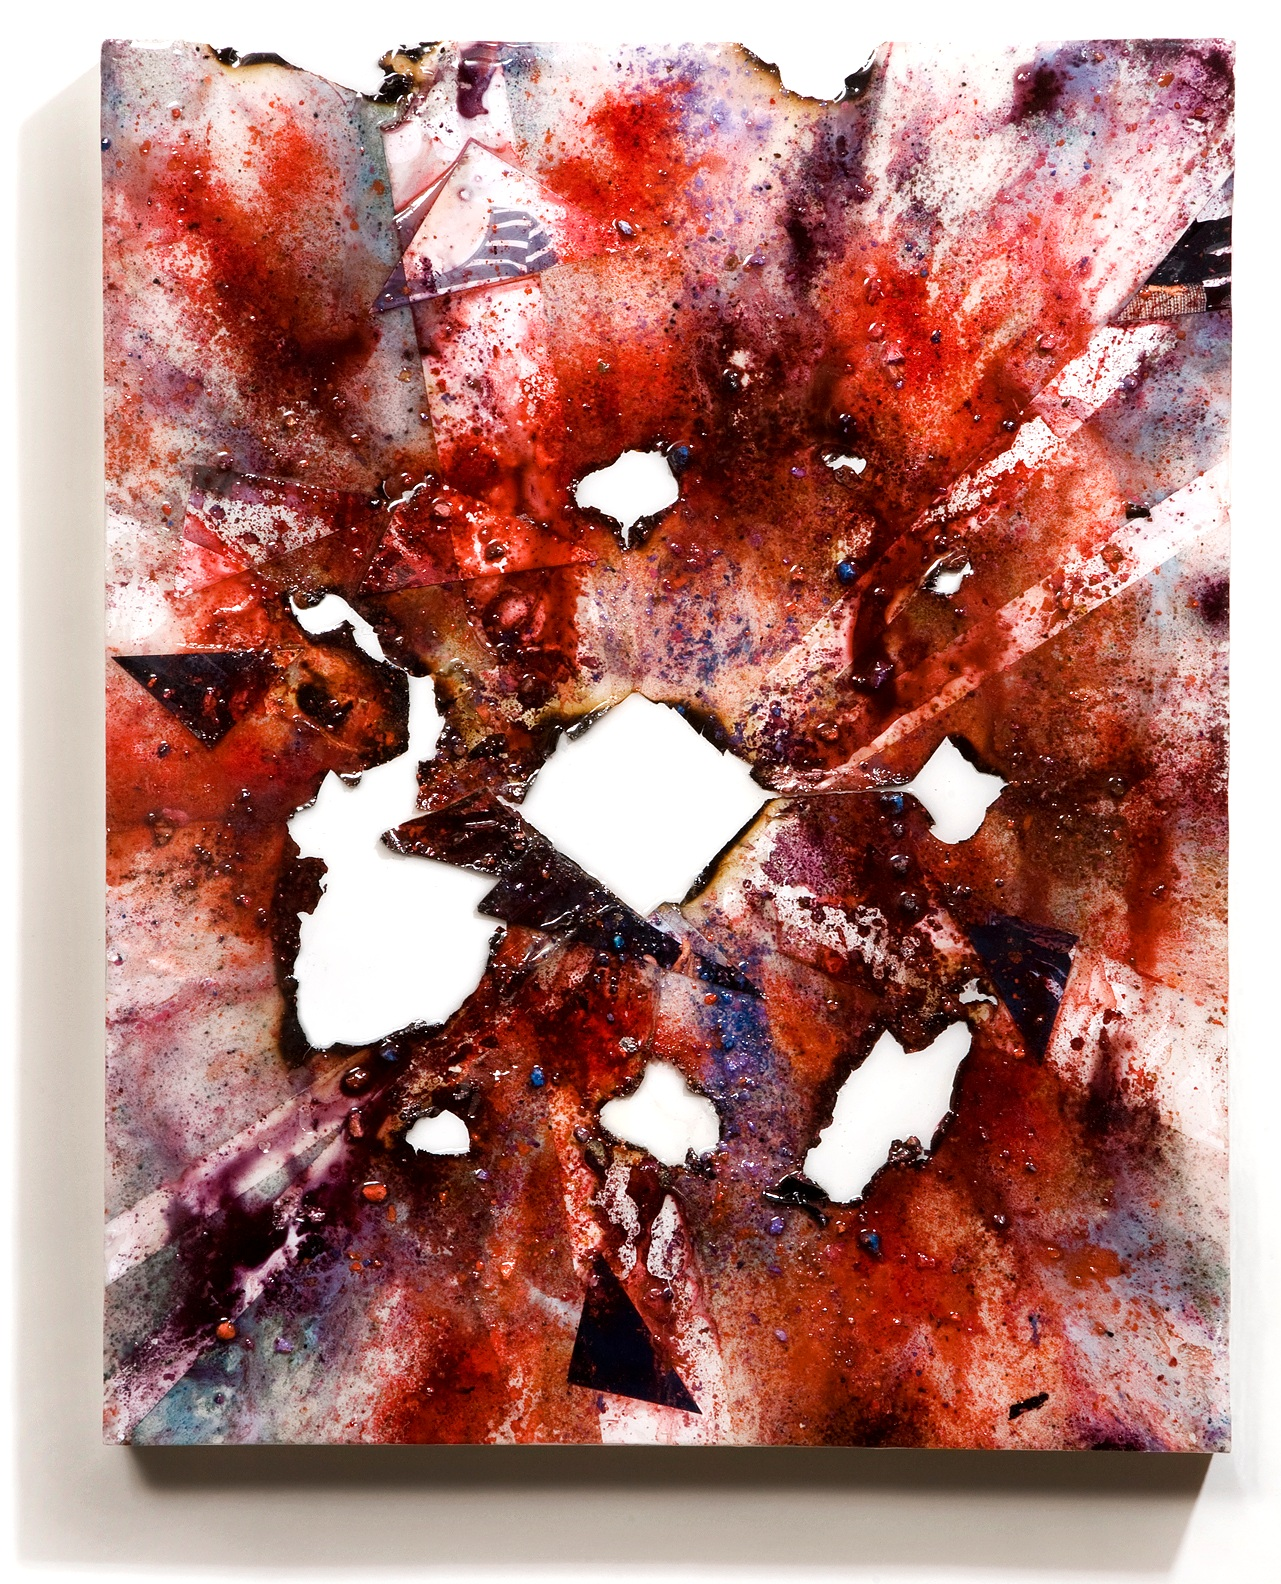 """SERIE I, Untitled (white/white), photographs, photo background paper, chalk, spray paint, packing tape, powder drink, glue, epoxy resin on wood panel, 16""""x20""""x2"""", 2018"""